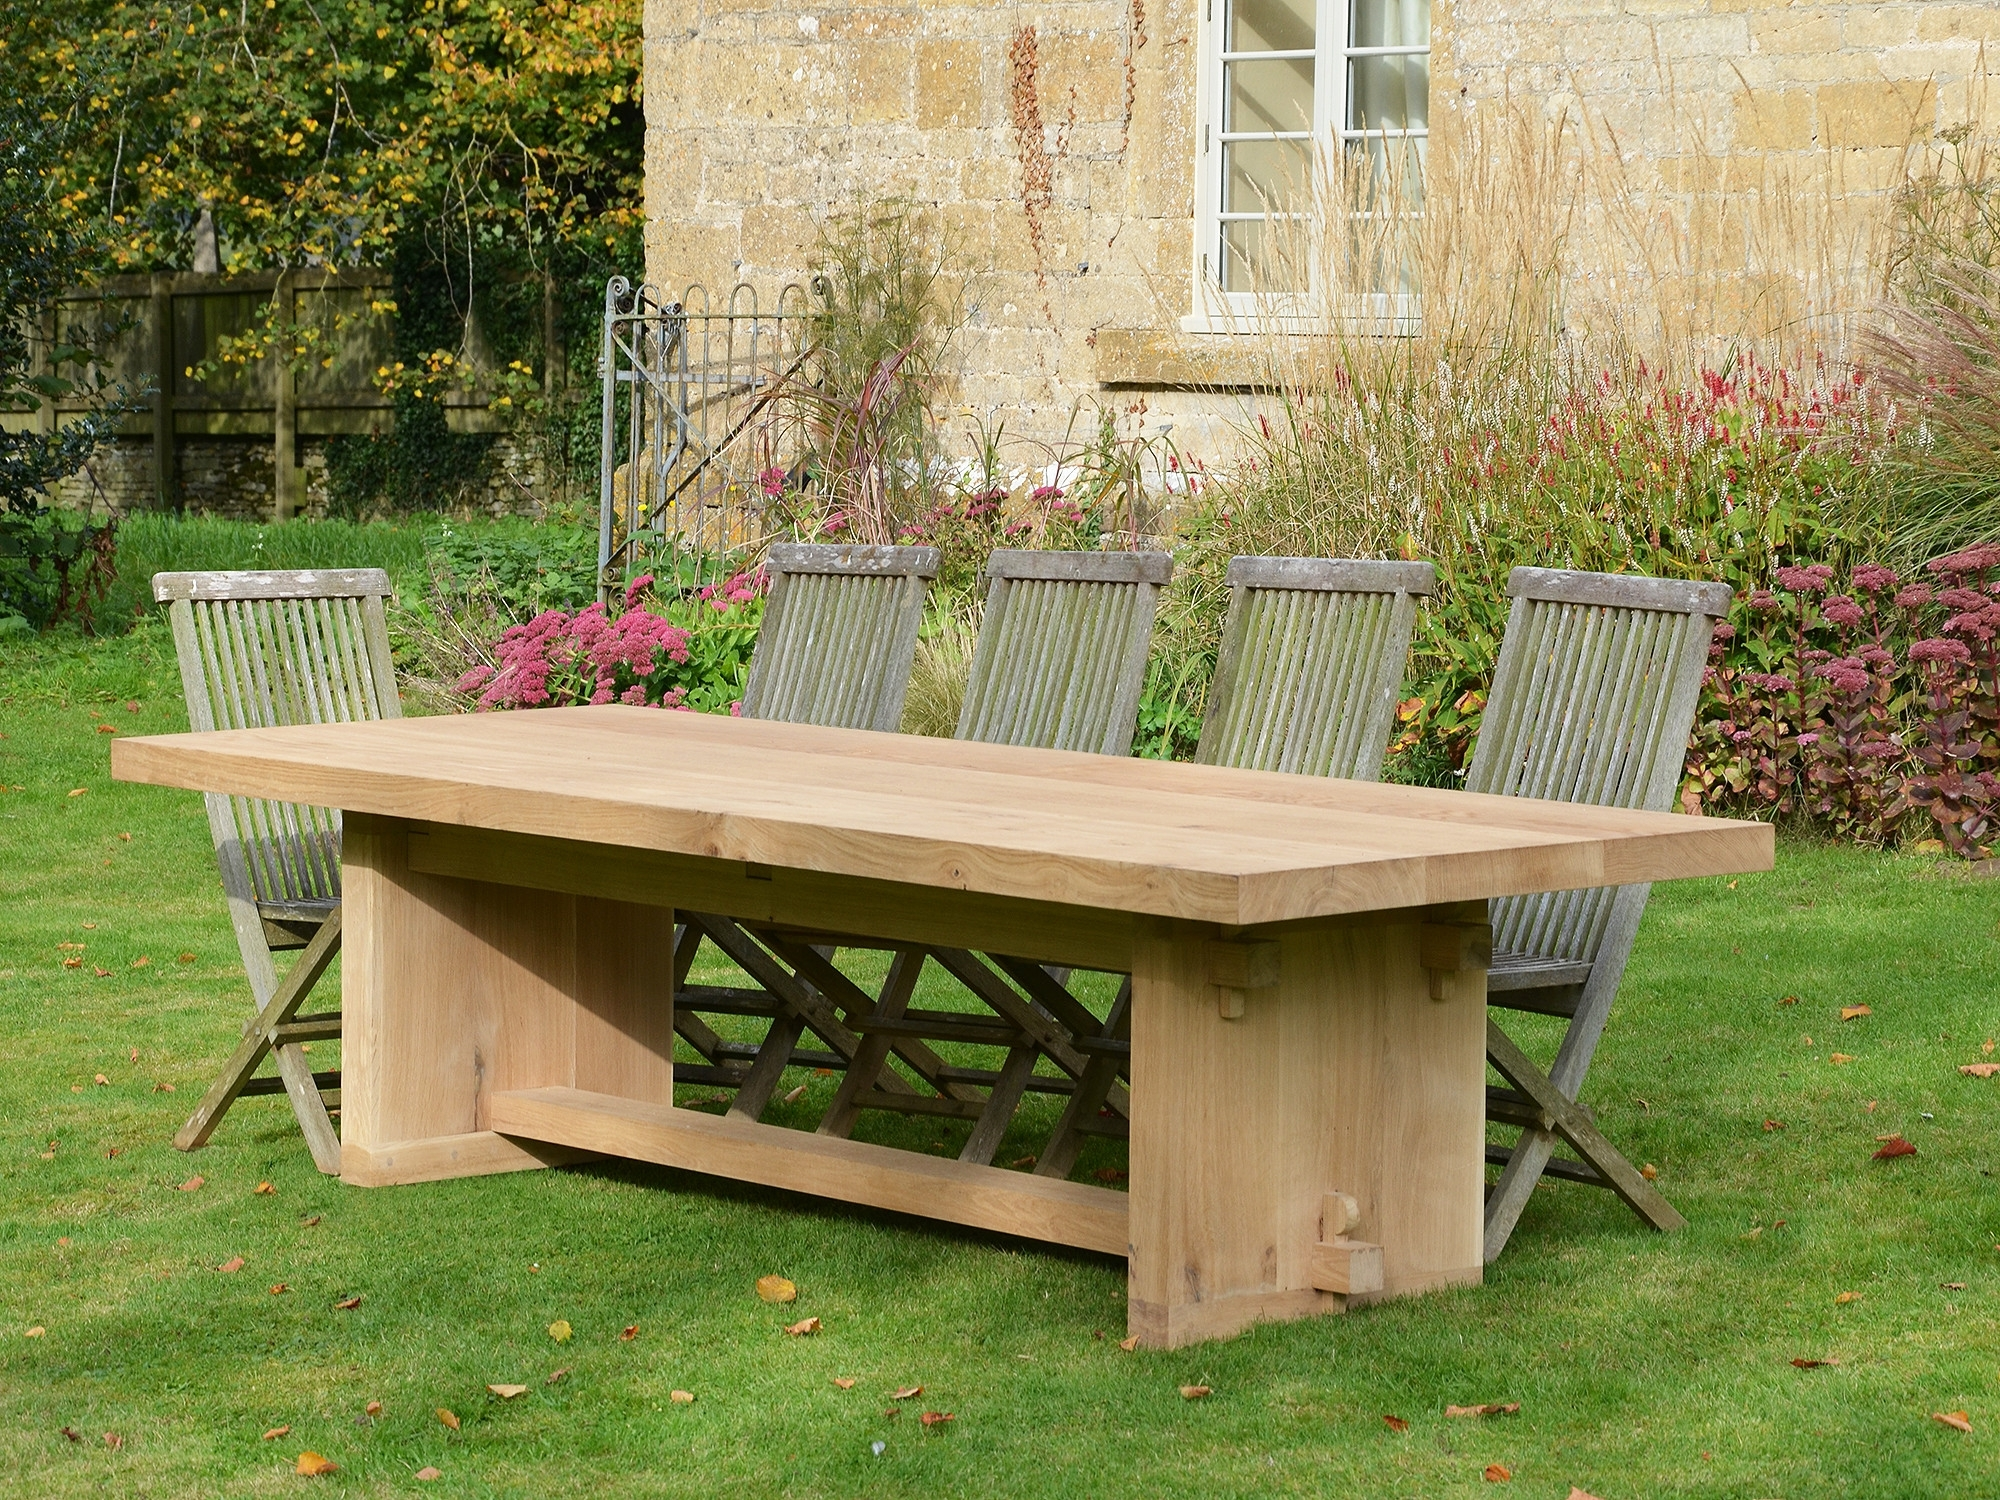 2018 Garden Dining Tables inside The Quercus Robur Garden Dining Table - Architectural Heritage